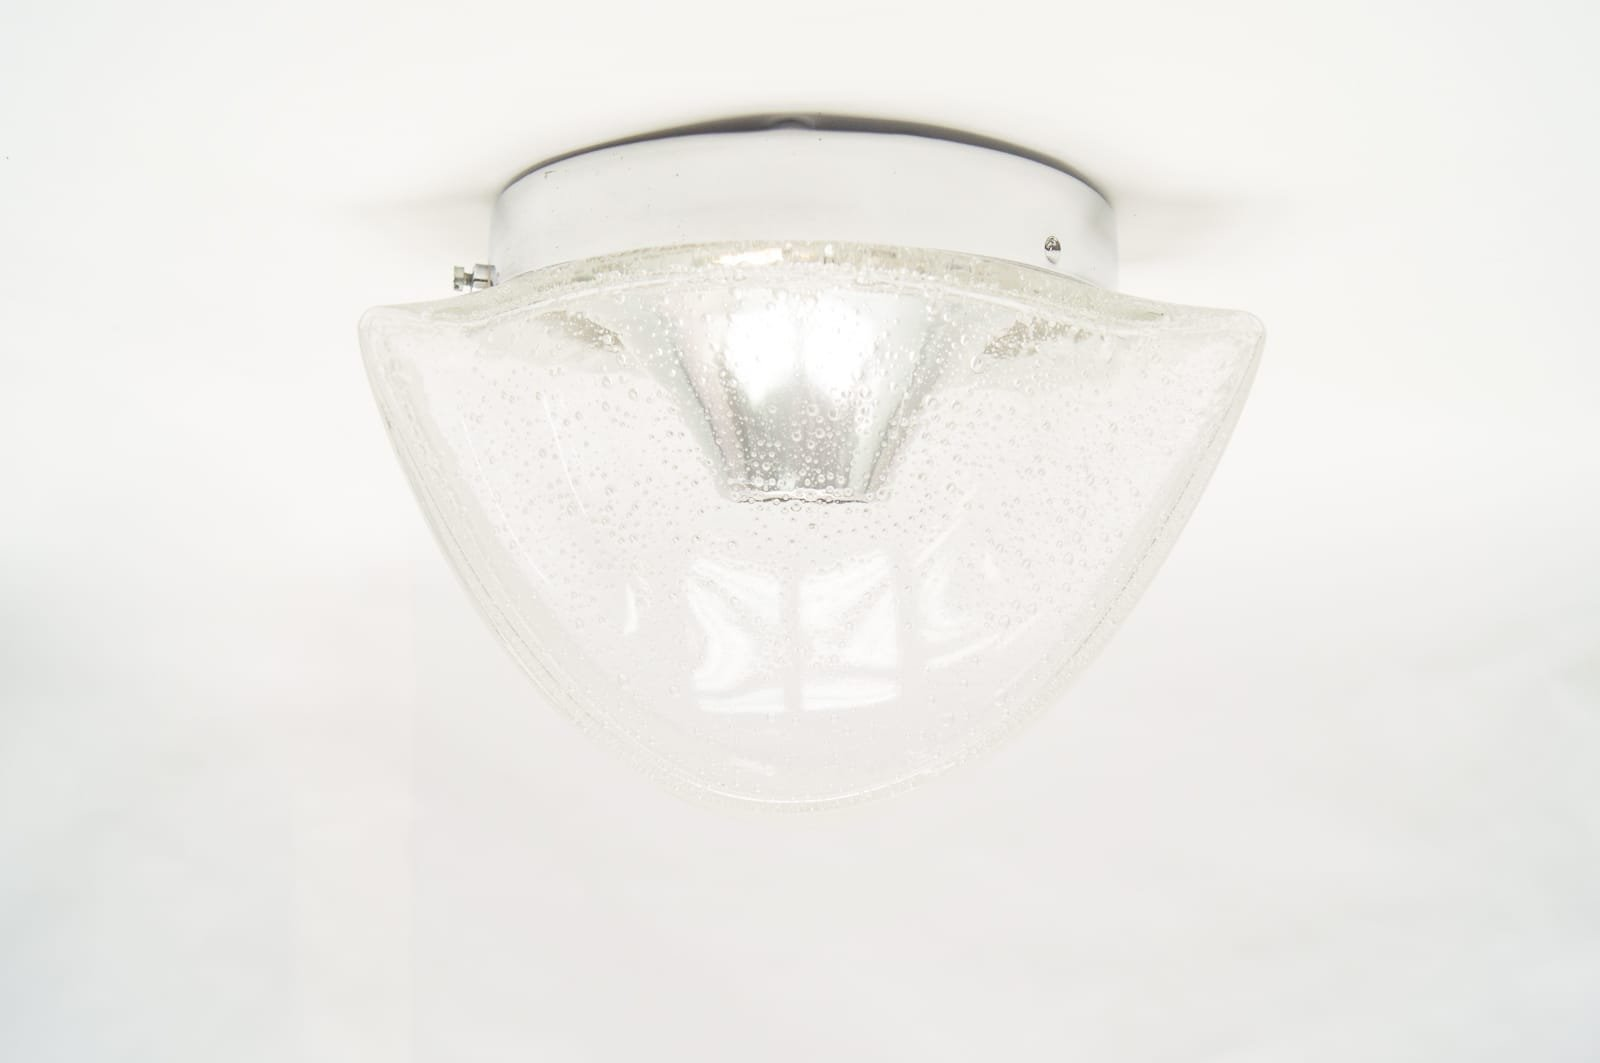 Small Led Wall Lights : Small Frosted Glass Wall Lights, 1960s, Set of 2 for sale at Pamono